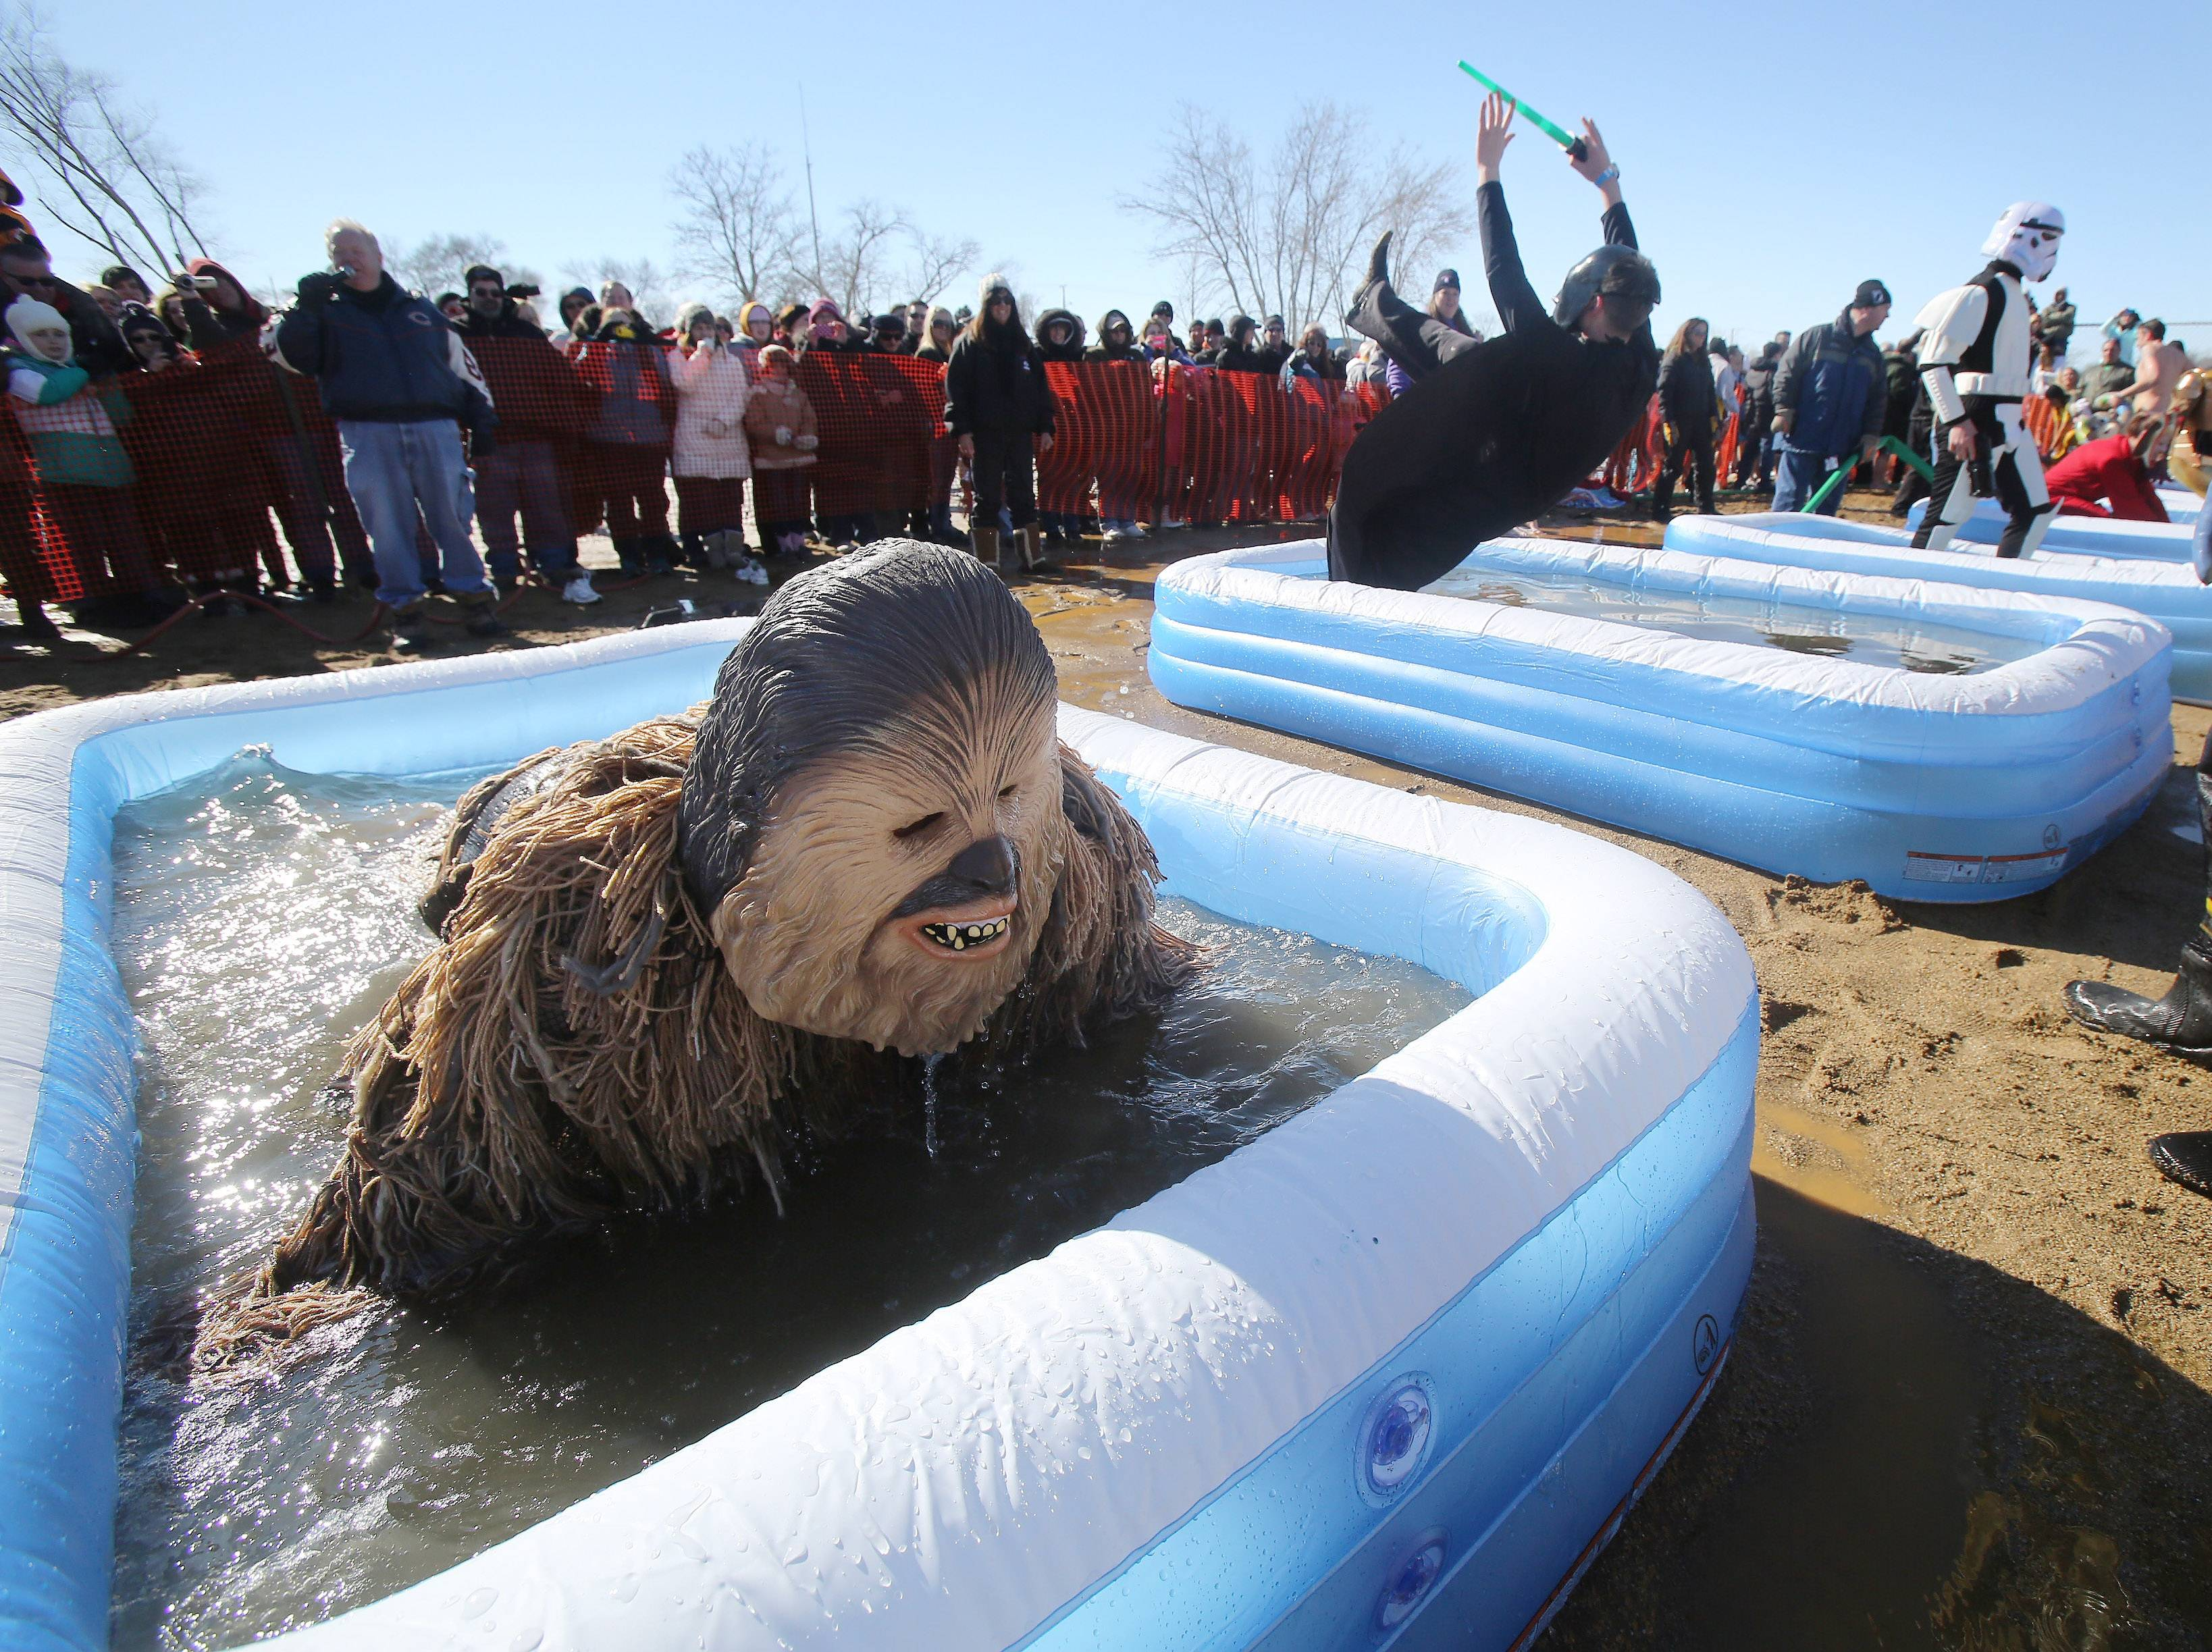 Grayslake Police Department members Joe Holtz, as Chewbacca, left, and Steve Teschner, as Darth Vader, dive in the pools during Fox Lake's Polar Plunge Sunday at Lakefront Park. The ice on the lake was over two feet thick and could not be cutout this year, so almost 500 participants took to jumping into frigid pools set up near the lake.